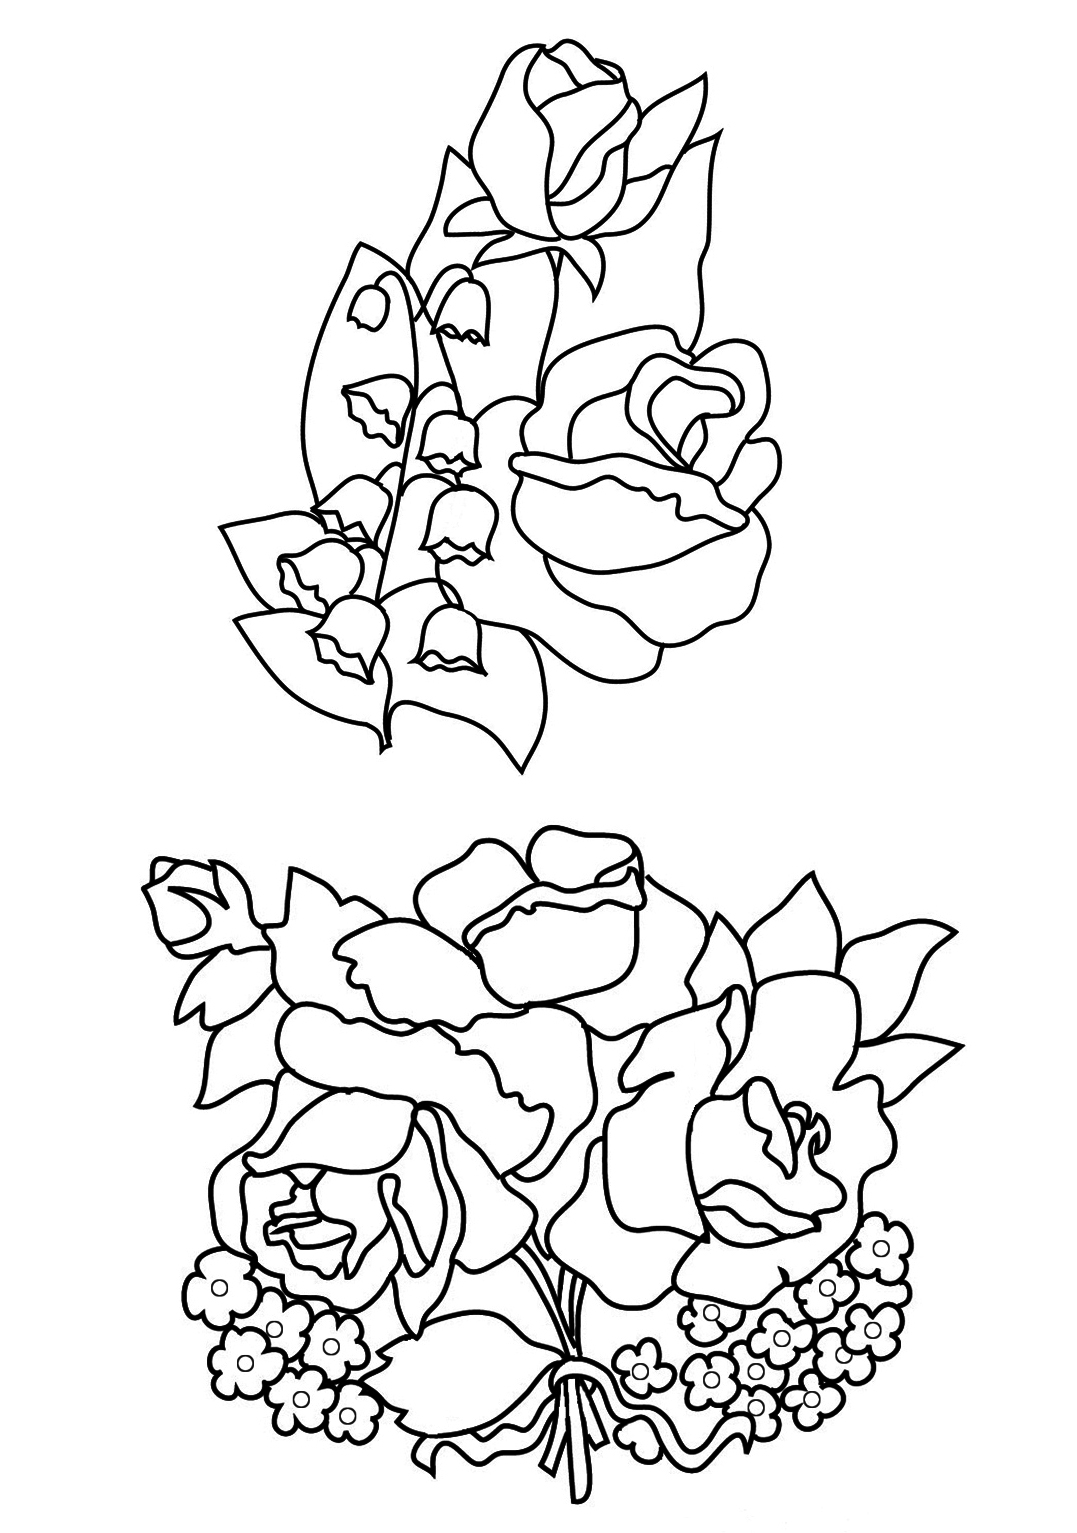 lily of the valley coloring page - flower coloring pages